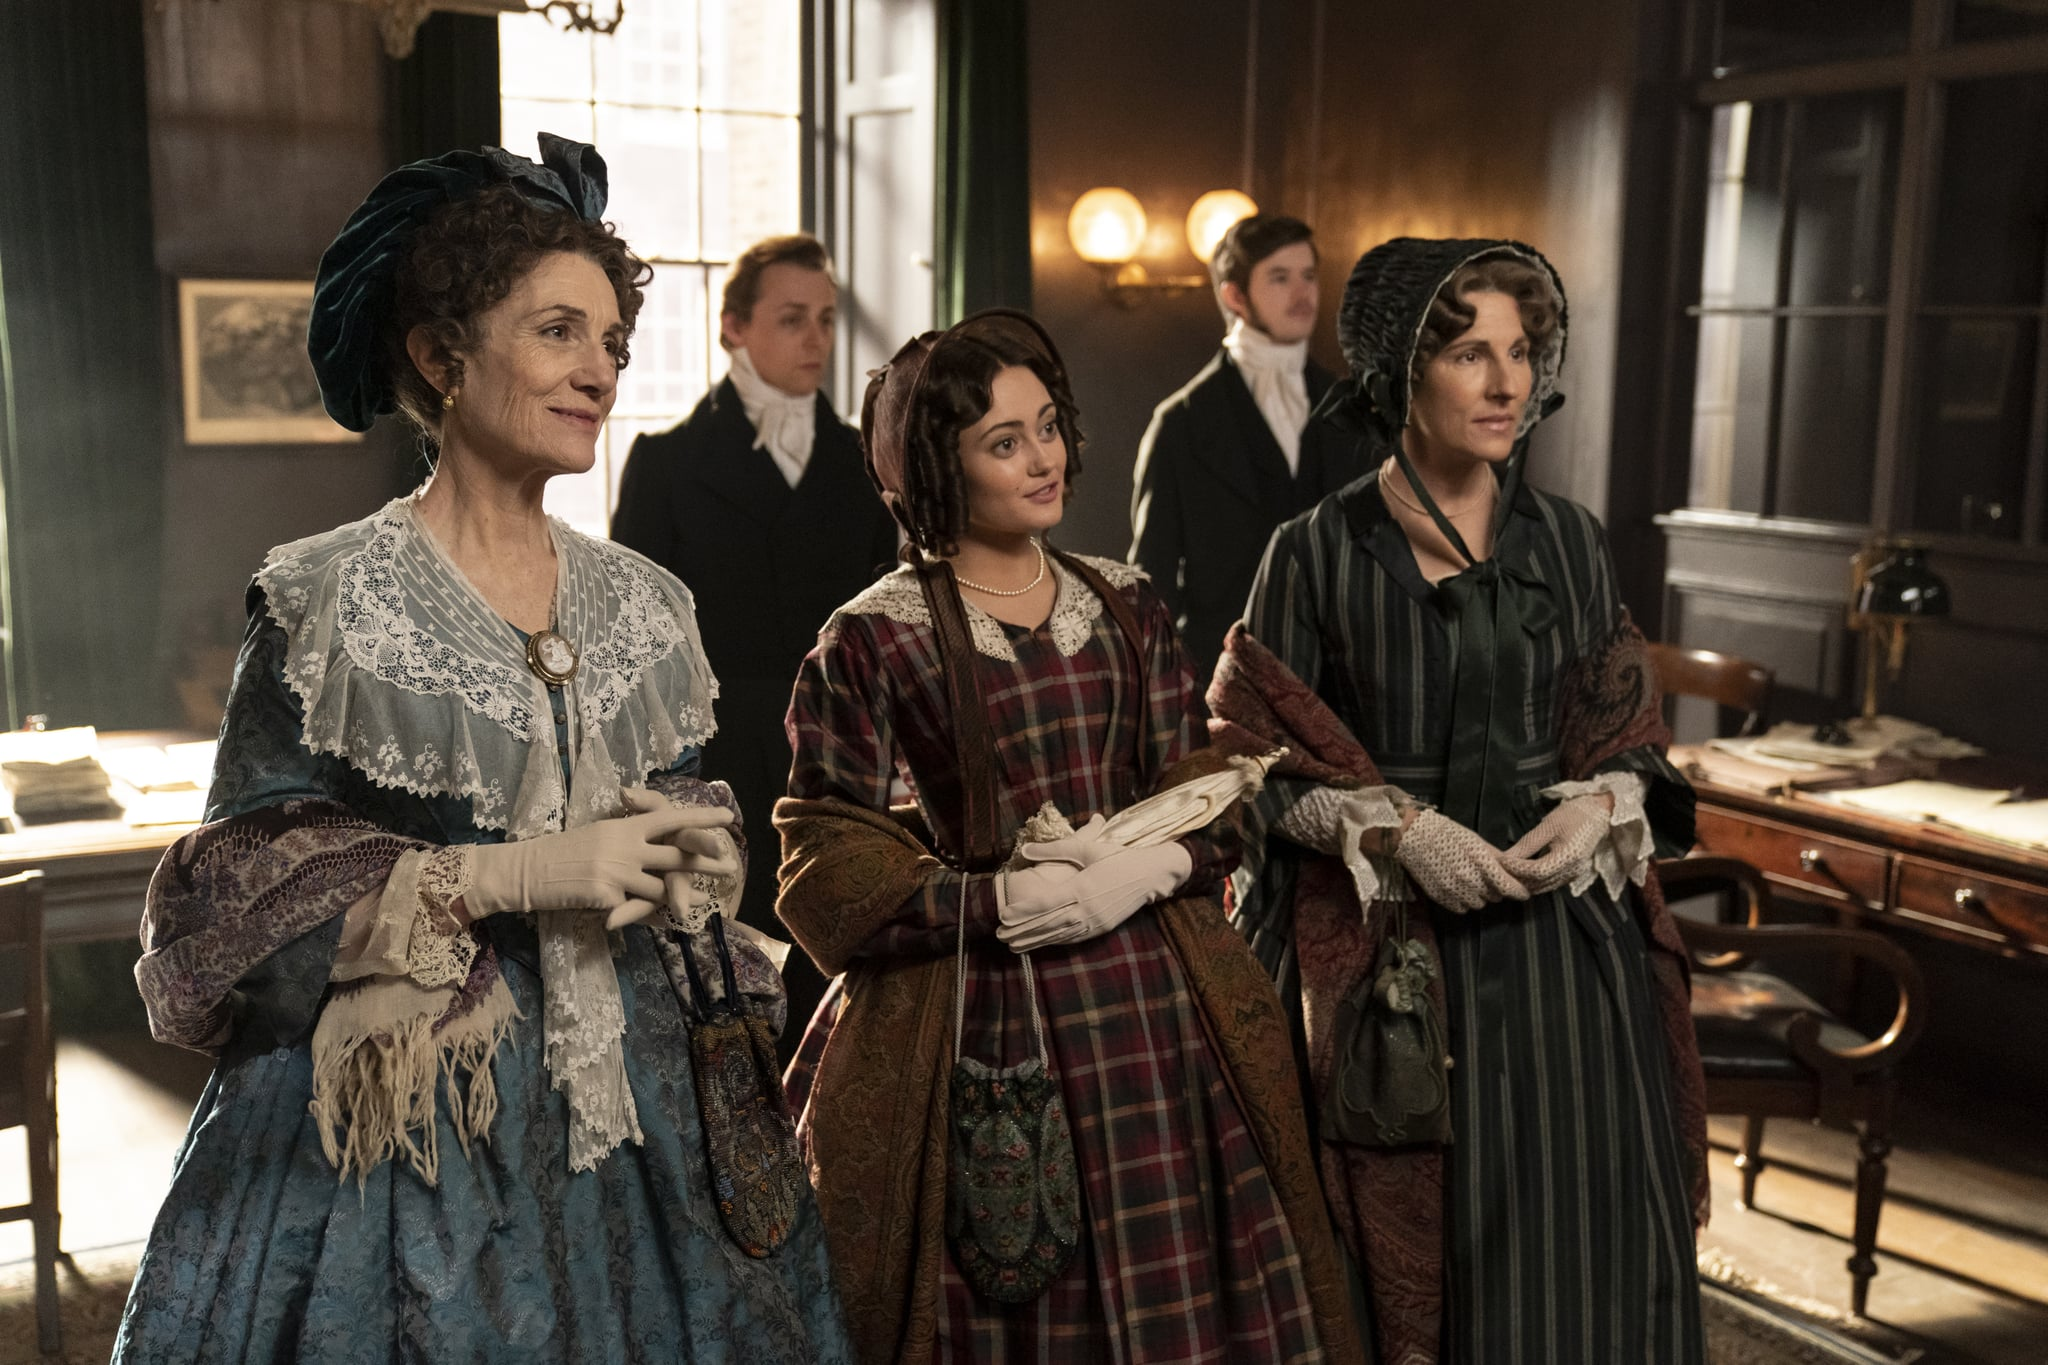 Belgravia, a brand new six-part series from Carnival Films coming to ITV and EPIX in 2020, tells Julian Fellowes intriguing tale of London society in the 19th Century.PICTURED:Harriet Walter as Lady Brockenhurst, Ella Purnell as Lady Maria Grey, Tamsin Greig as Anne TrenchardPhotographer Colin Hutton. The award-winning creative team behind Downton Abbey reunites with Fellowes, who has adapted from his bestselling novel of the same name for television screens, joined by a stellar ensemble cast including Tamsin Grieg, Philip Glenister, Harriet Walter, Tom Wilkinson and Alice Eve. Filming completed earlier this year at a range of stunning Victorian locations in London and the home counties, Edinburgh, Bath and Northumberland.  Belgravia is a story of secrets and dishonour amongst the upper echelon of London society in the 19th Century. When the Trenchards accept an invitation to the now legendary ball hosted by the Duchess of Richmond on the fateful eve of the Battle of Waterloo, it sets in motion a series of events that will have consequences for decades to come as secrets unravel behind the porticoed doors of Londons grandest postcode.  Carnival Films Gareth Neame is executive producer alongside Nigel Marchant, Liz Trubridge and Fellowes. John Alexander (Sense & Sensibility, Trust Me) directed the limited series with Colin Wratten (Killing Eve) producing.